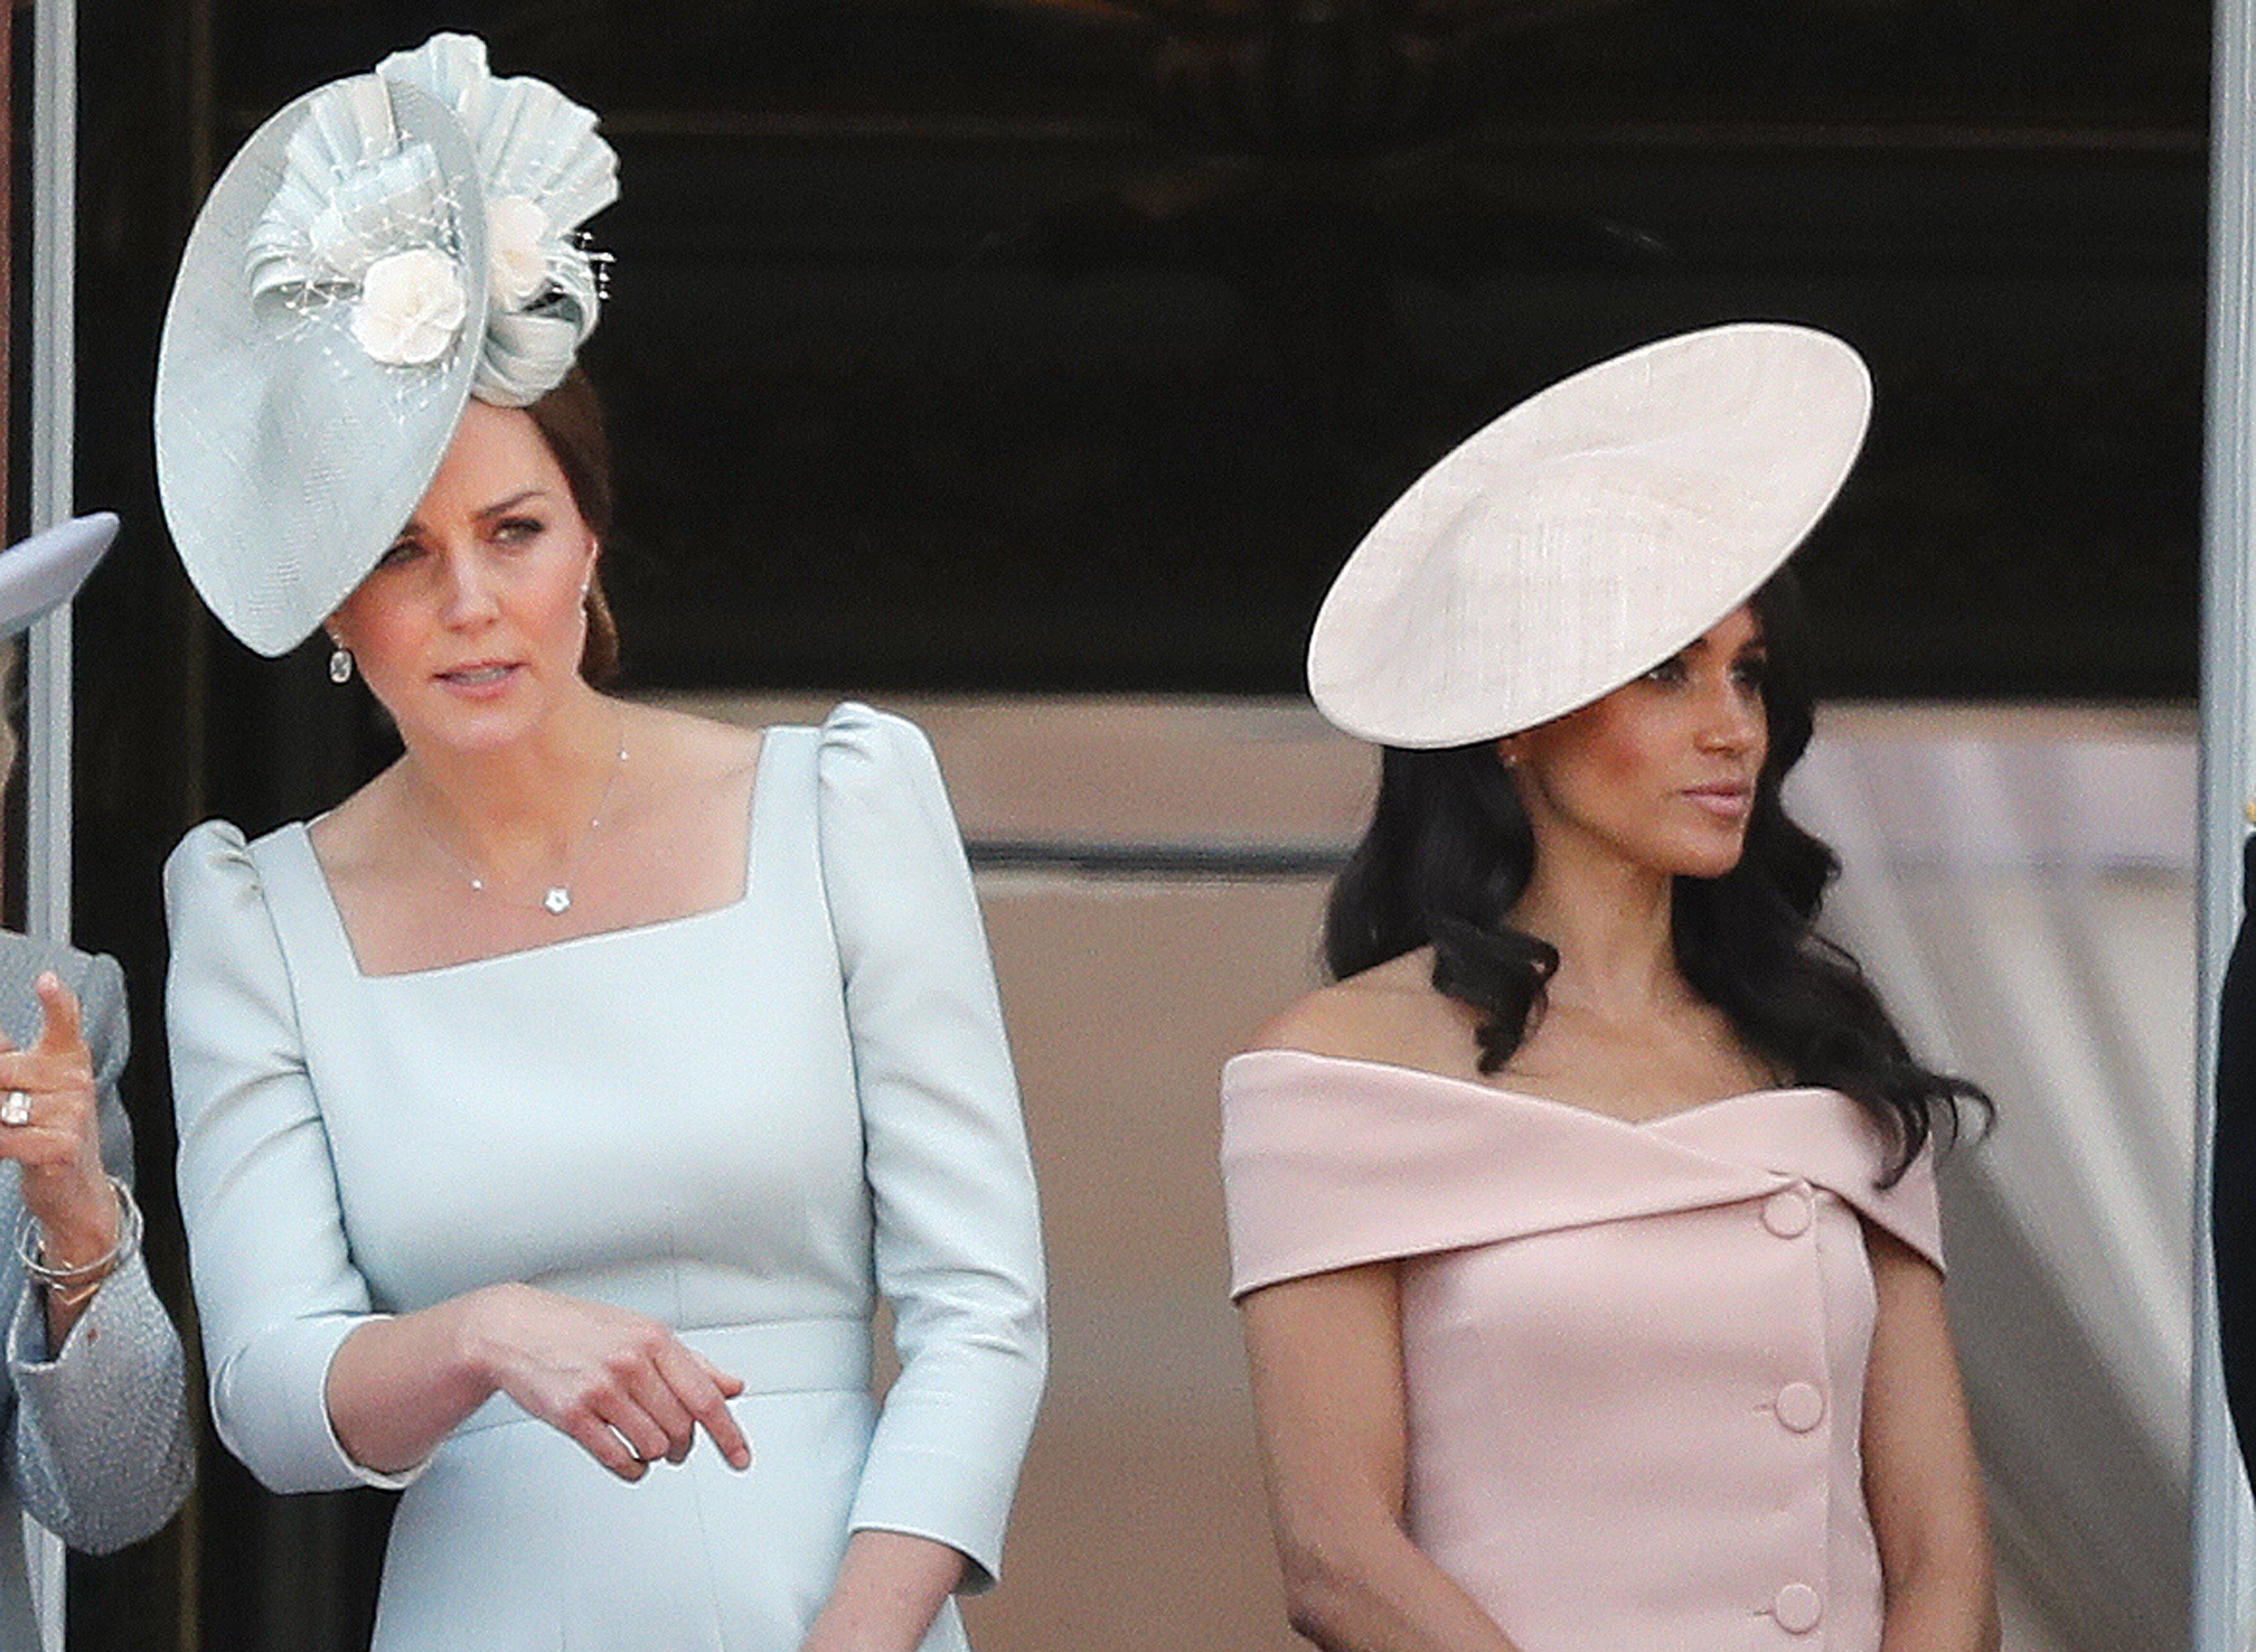 Britain's Kate, the Duchess of Cambridge, left, and Meghan, the Duchess of Sussex attend the annual Trooping the Colour Ceremony in London, Saturday, June 9, 2018.(AP Photo/Frank Augstein)